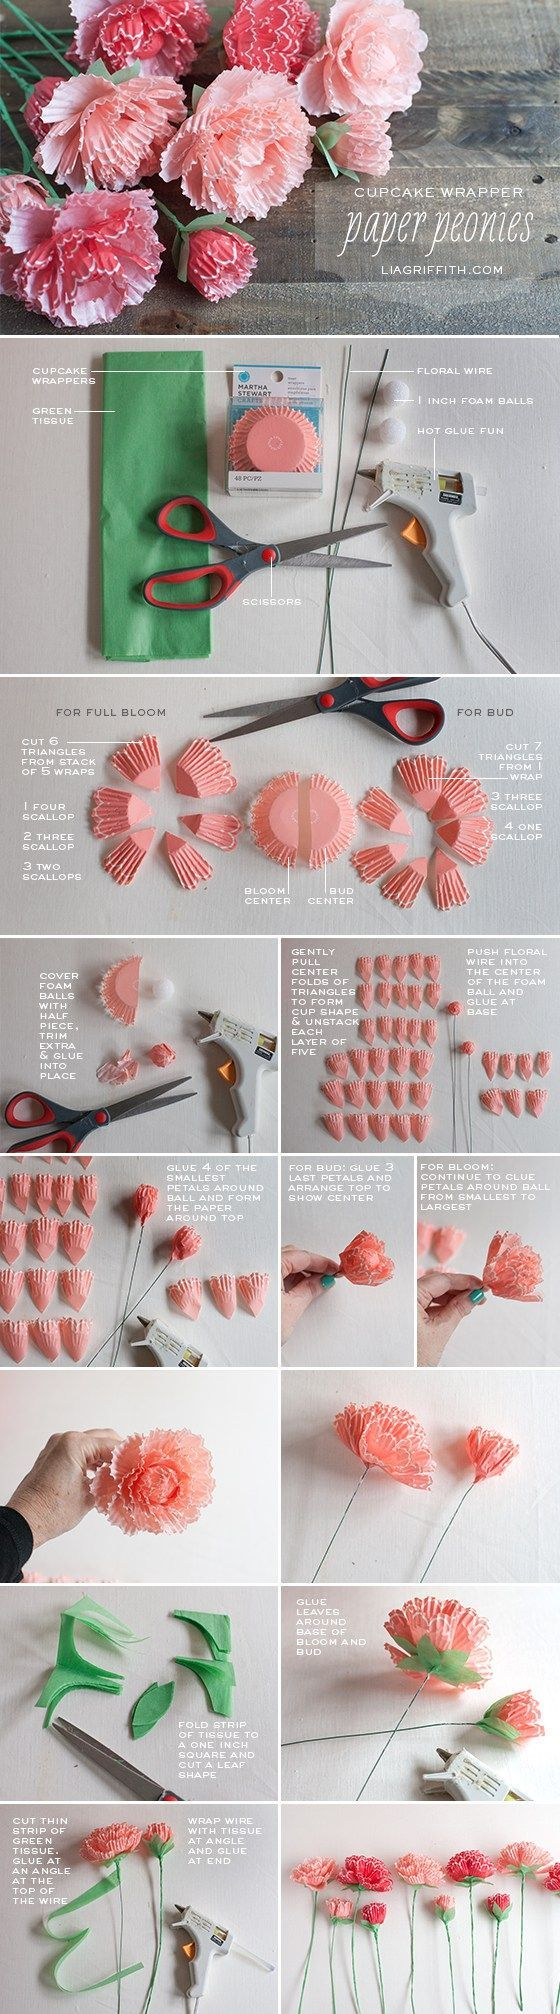 Cupcake Wrapper Peonies - Make Her Some Fabulous Mothers Day Flowers That Last F...